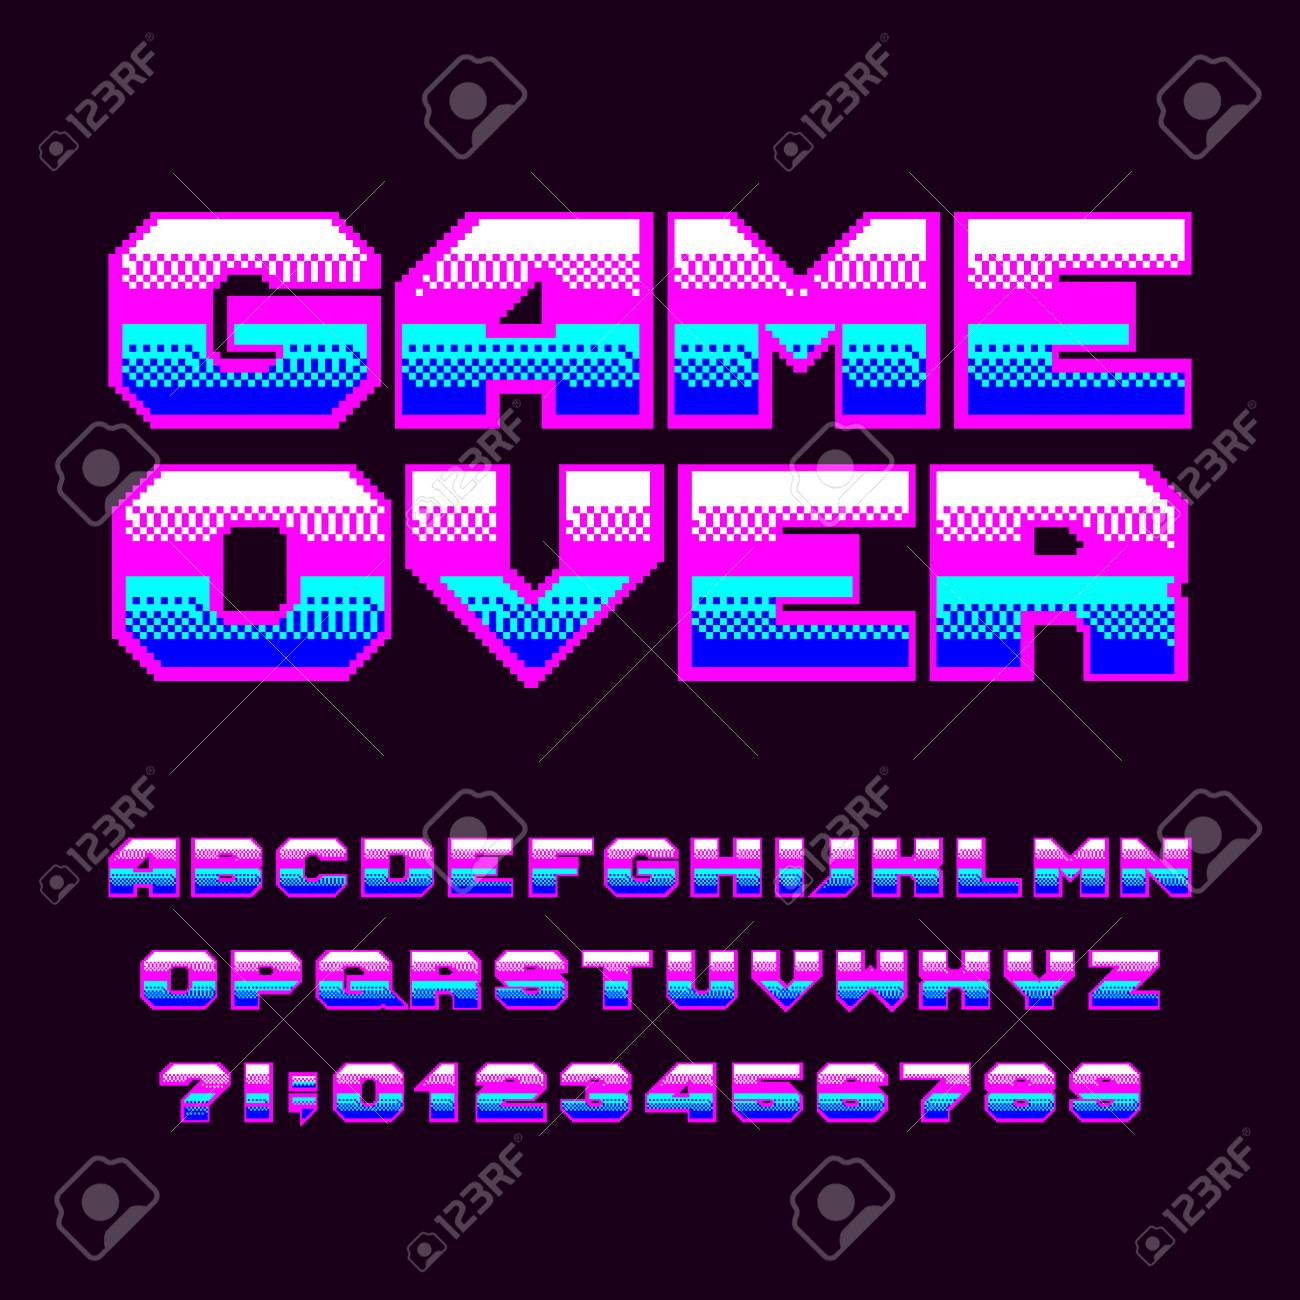 Game over alphabet font  Pixel letters and numbers  80s arcade